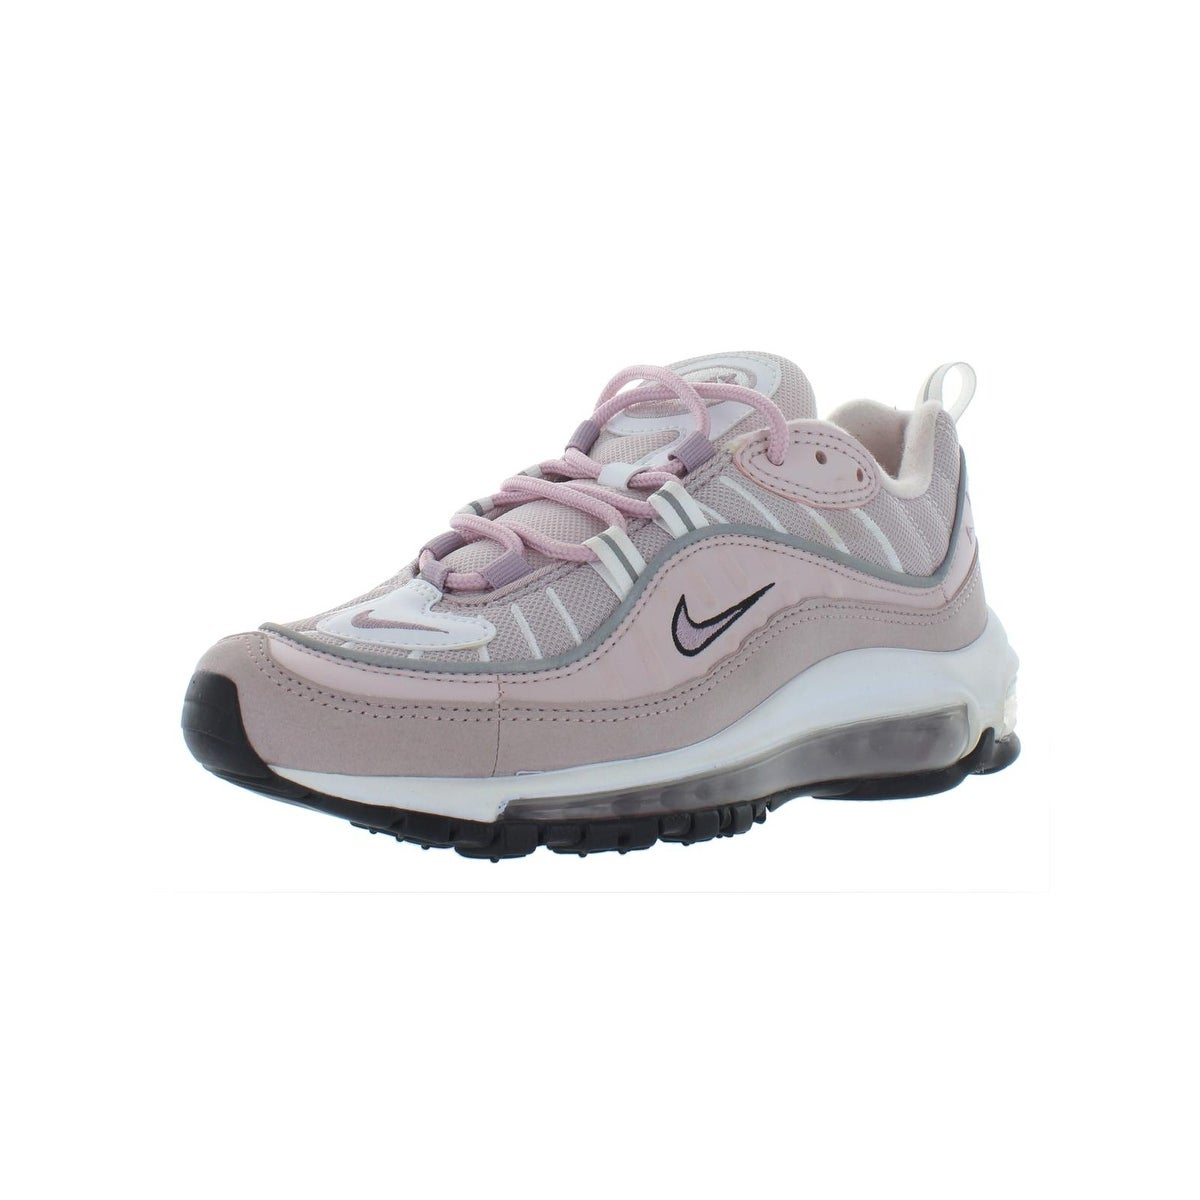 online store e604f 6863d Buy Nike Women s Athletic Shoes Online at Overstock   Our Best Women s Shoes  Deals